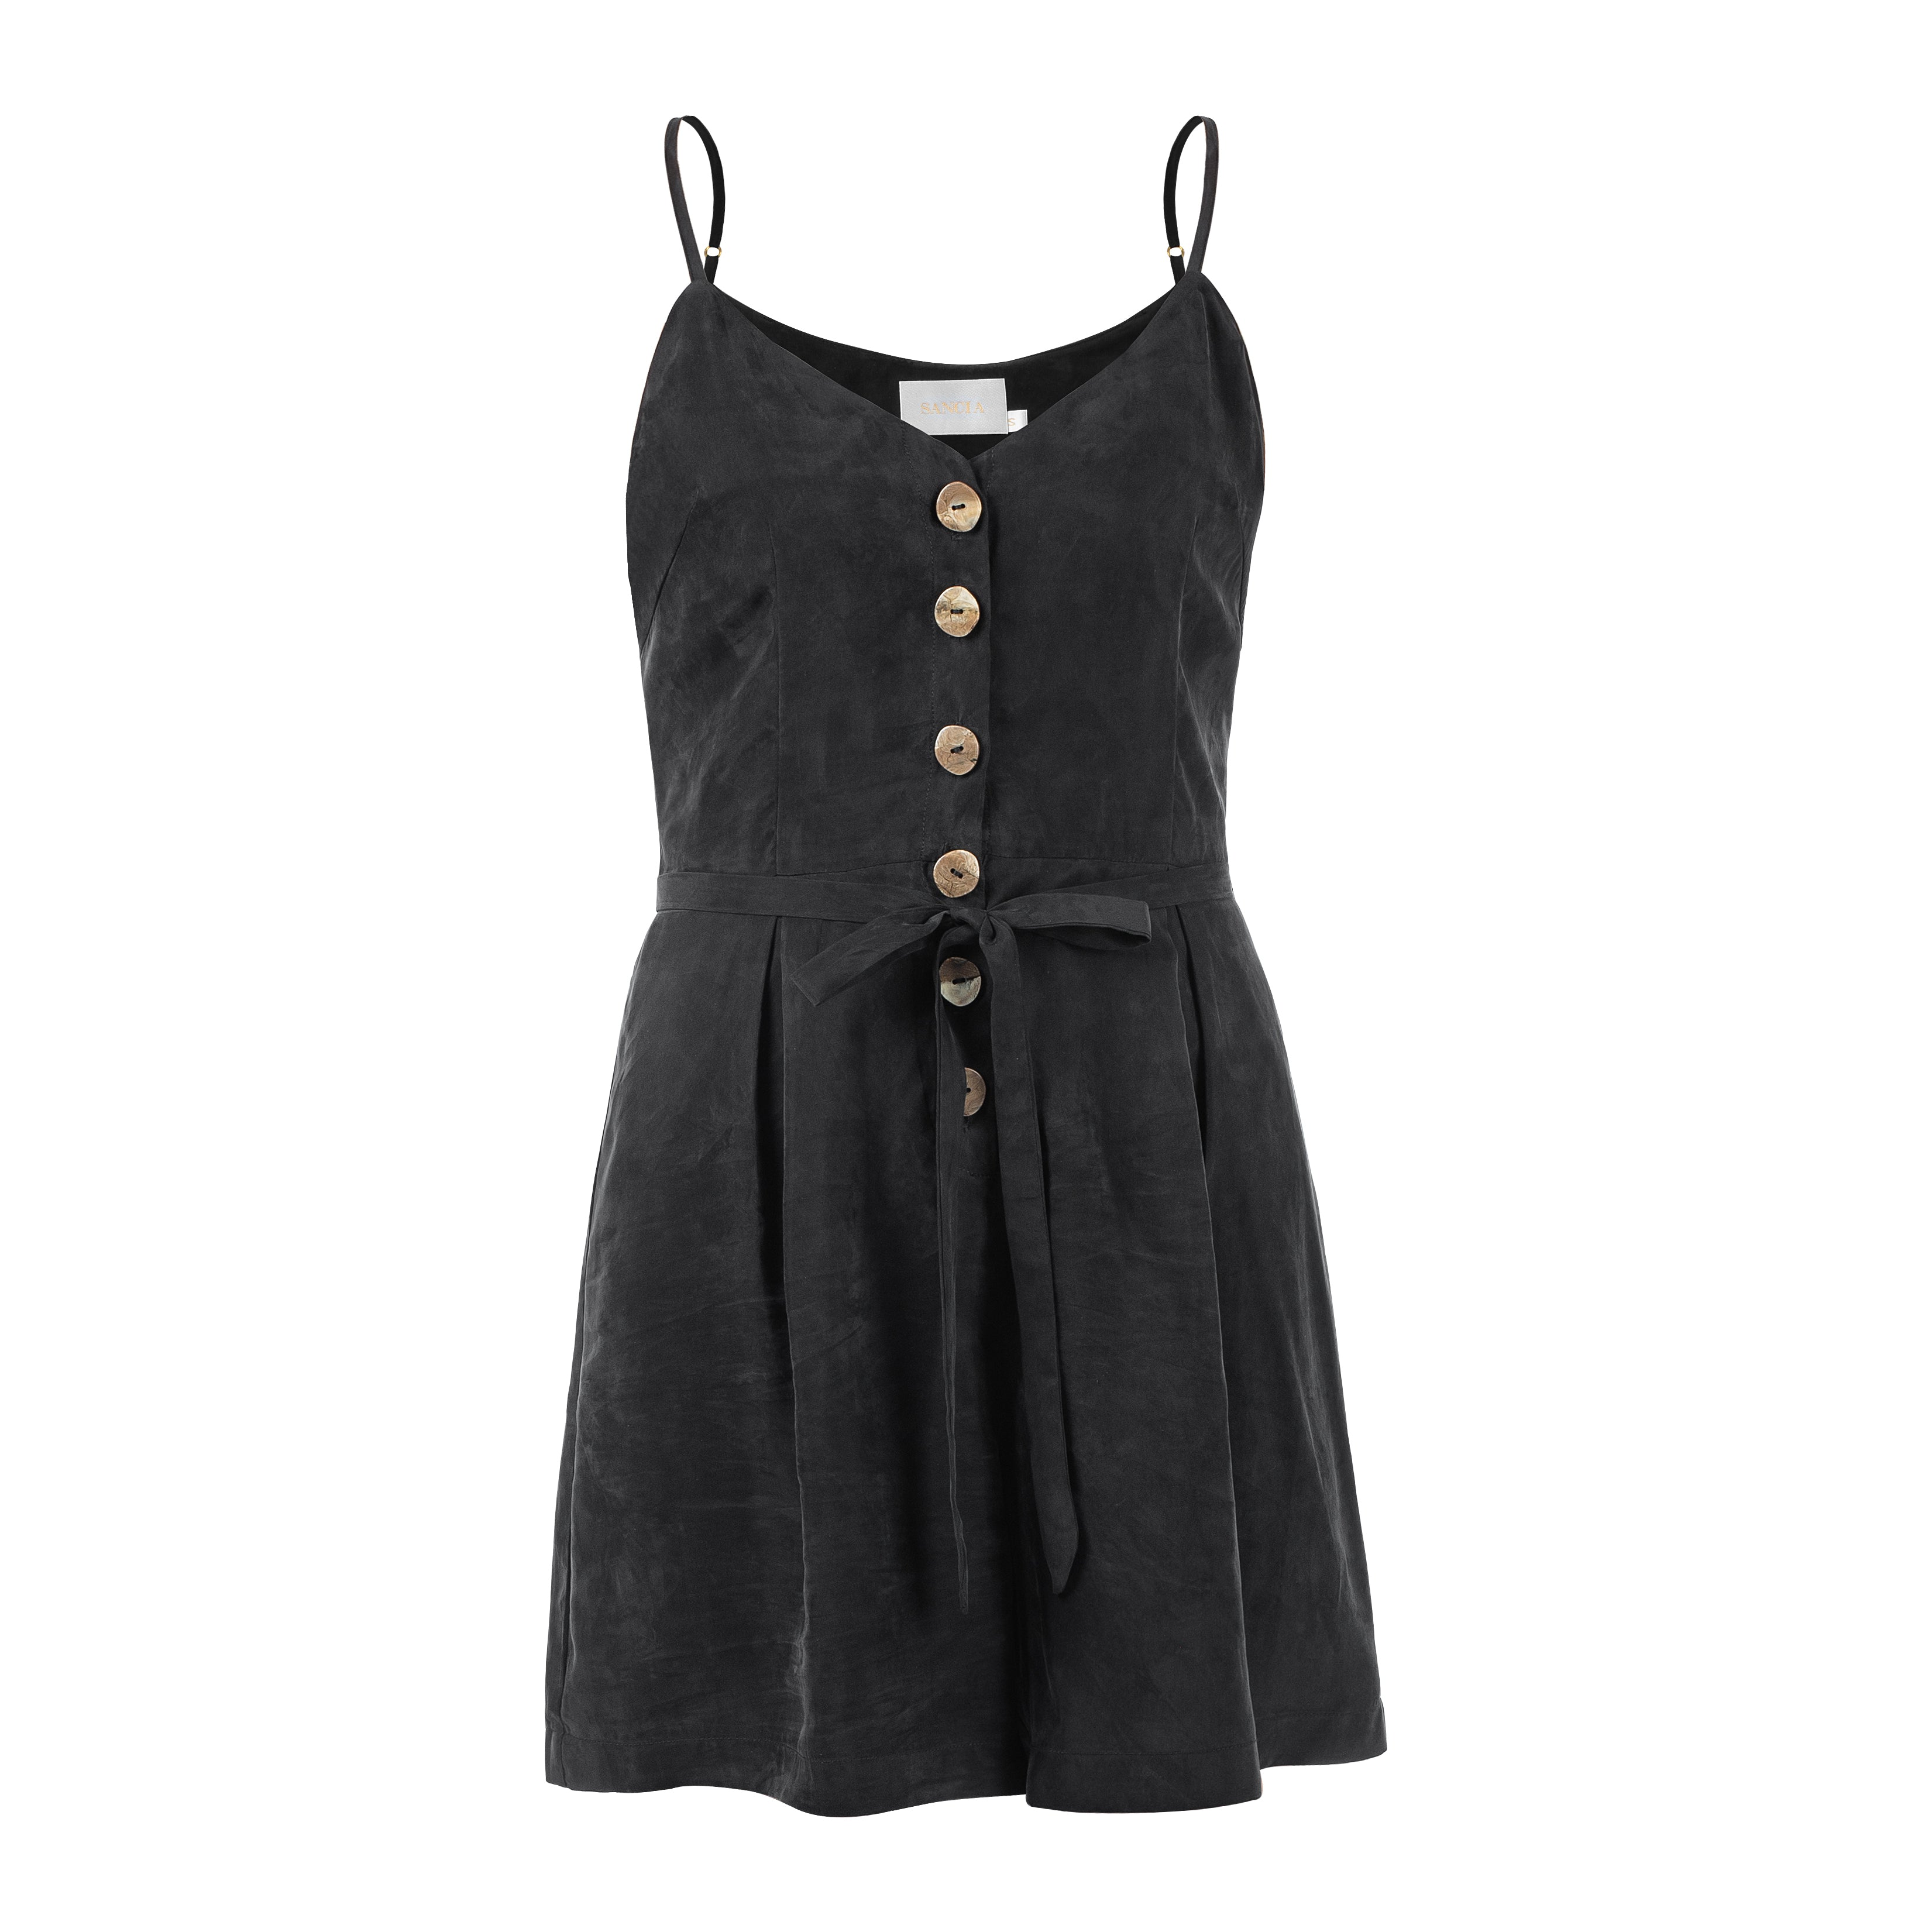 THE ELIN PLAYSUIT